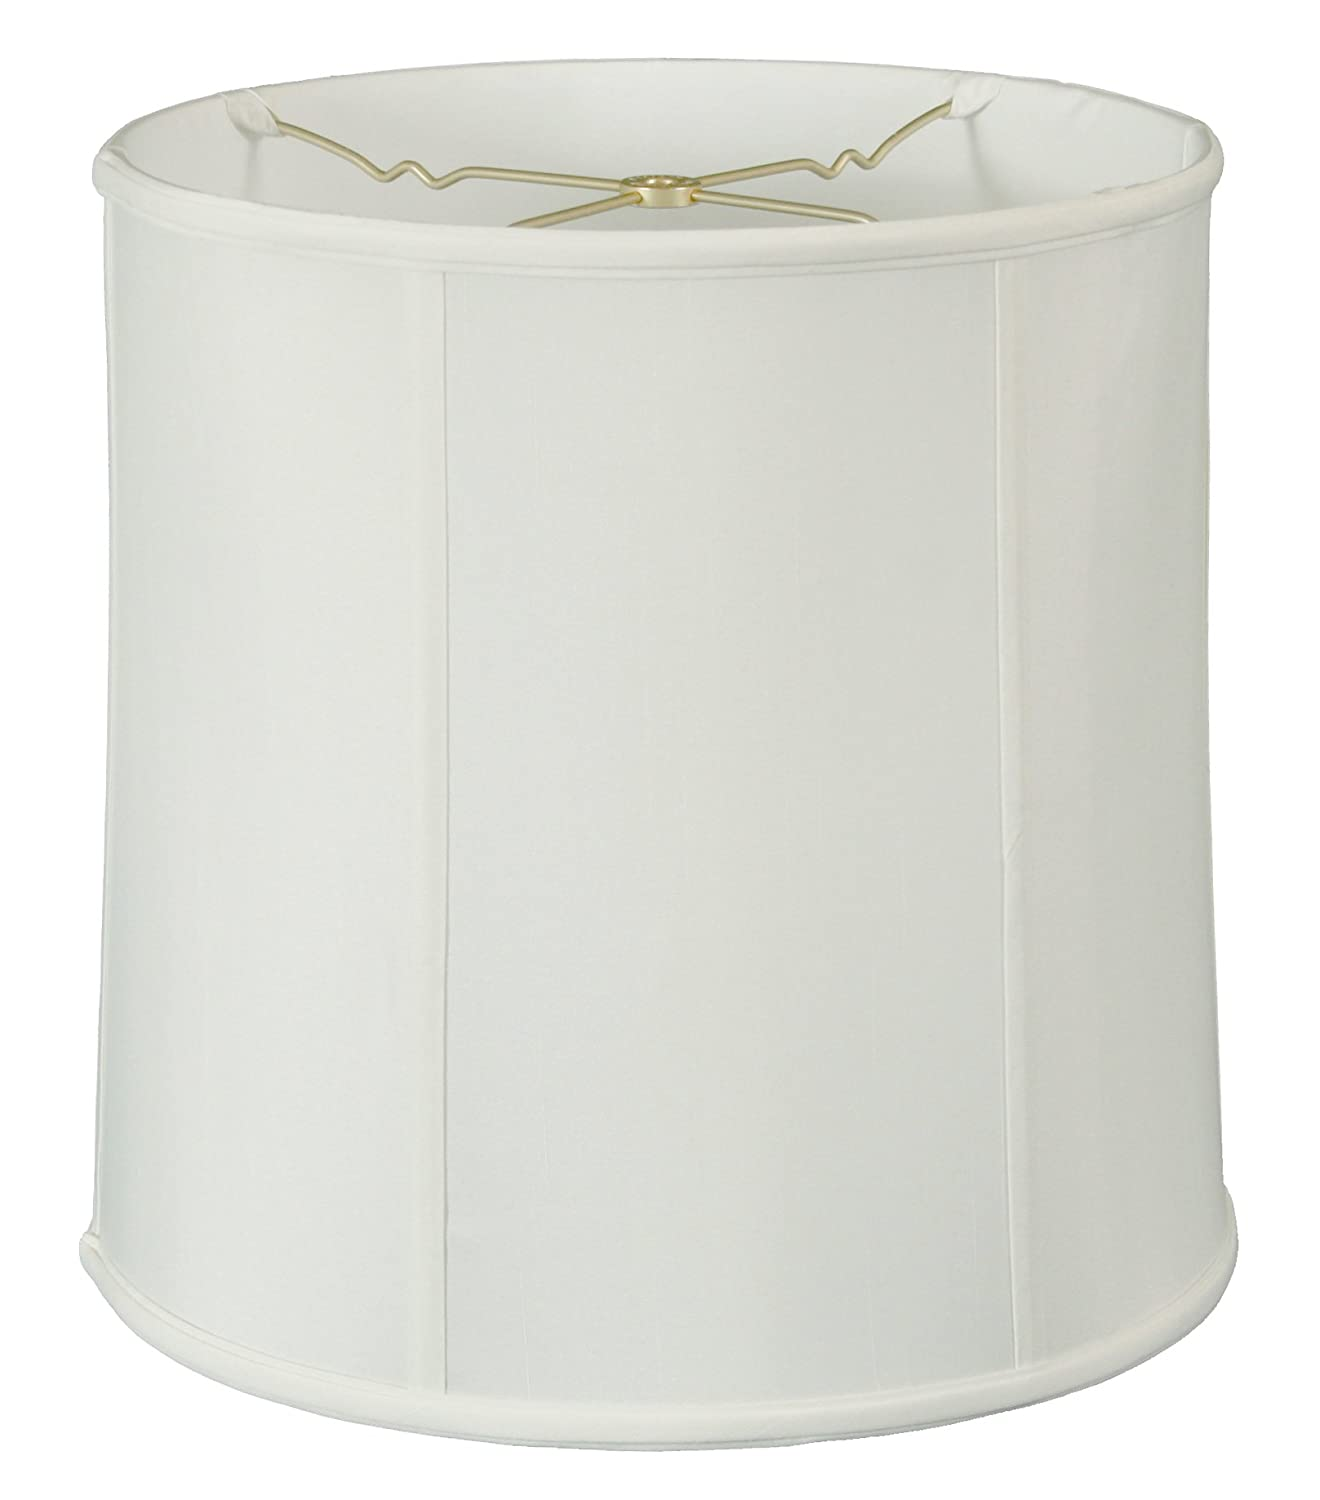 "Royal Designs BS-719-15WH Basic Drum Lamp Shade, 14"" x 15"" x 15"", White"